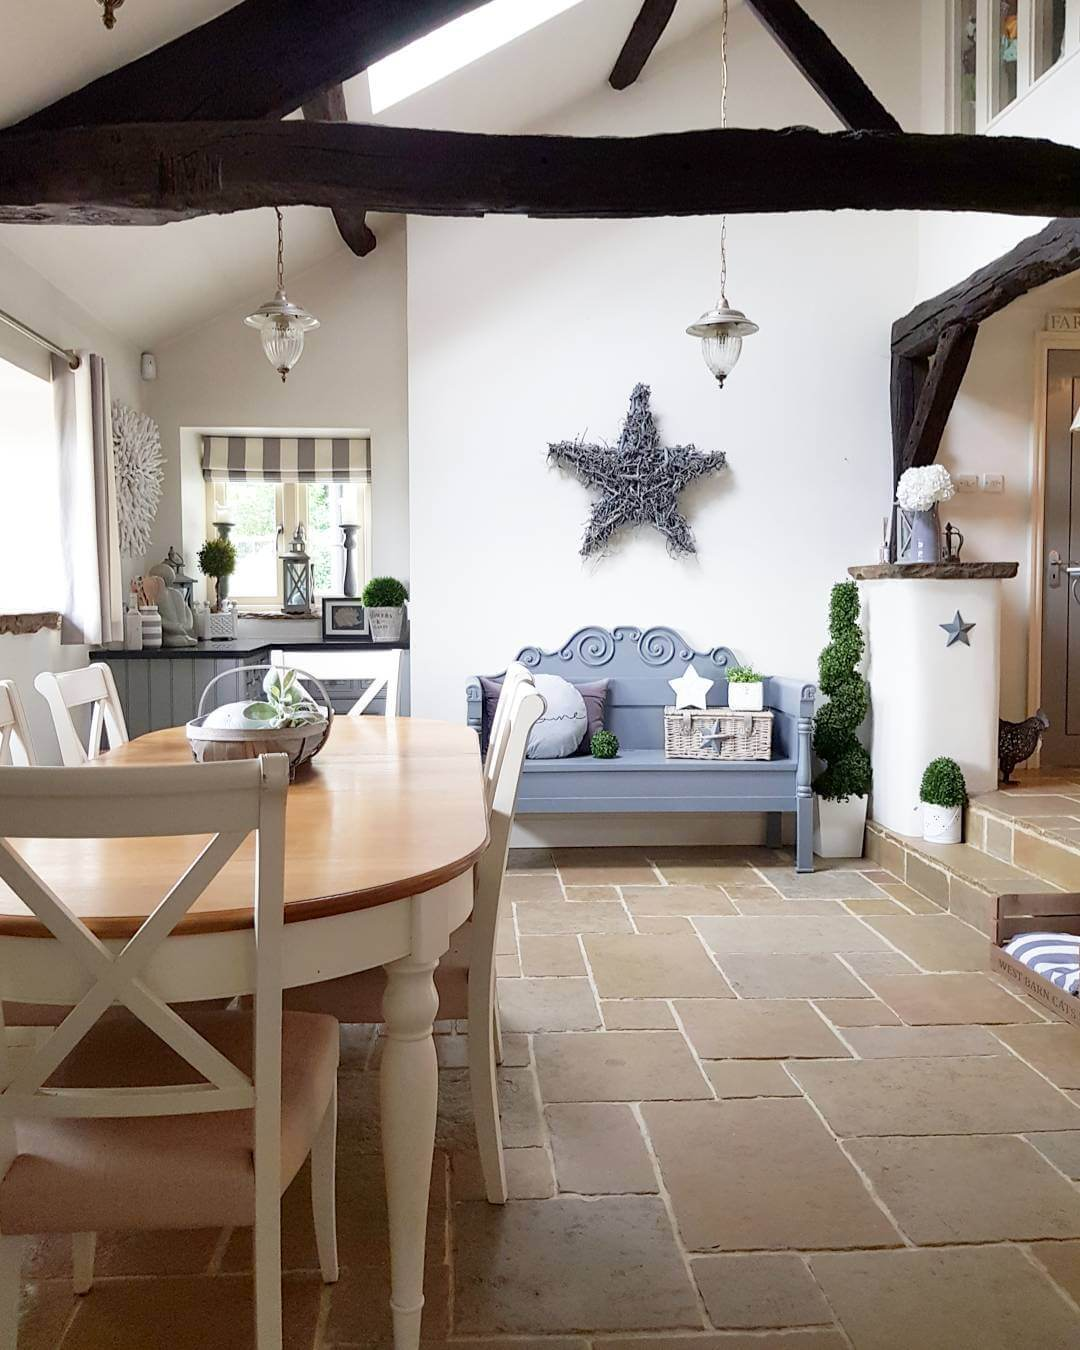 A modern country dining room with a dash of danish - Hear what Colleen from West Barn Interiors has to say www.lovetohome.co.uk